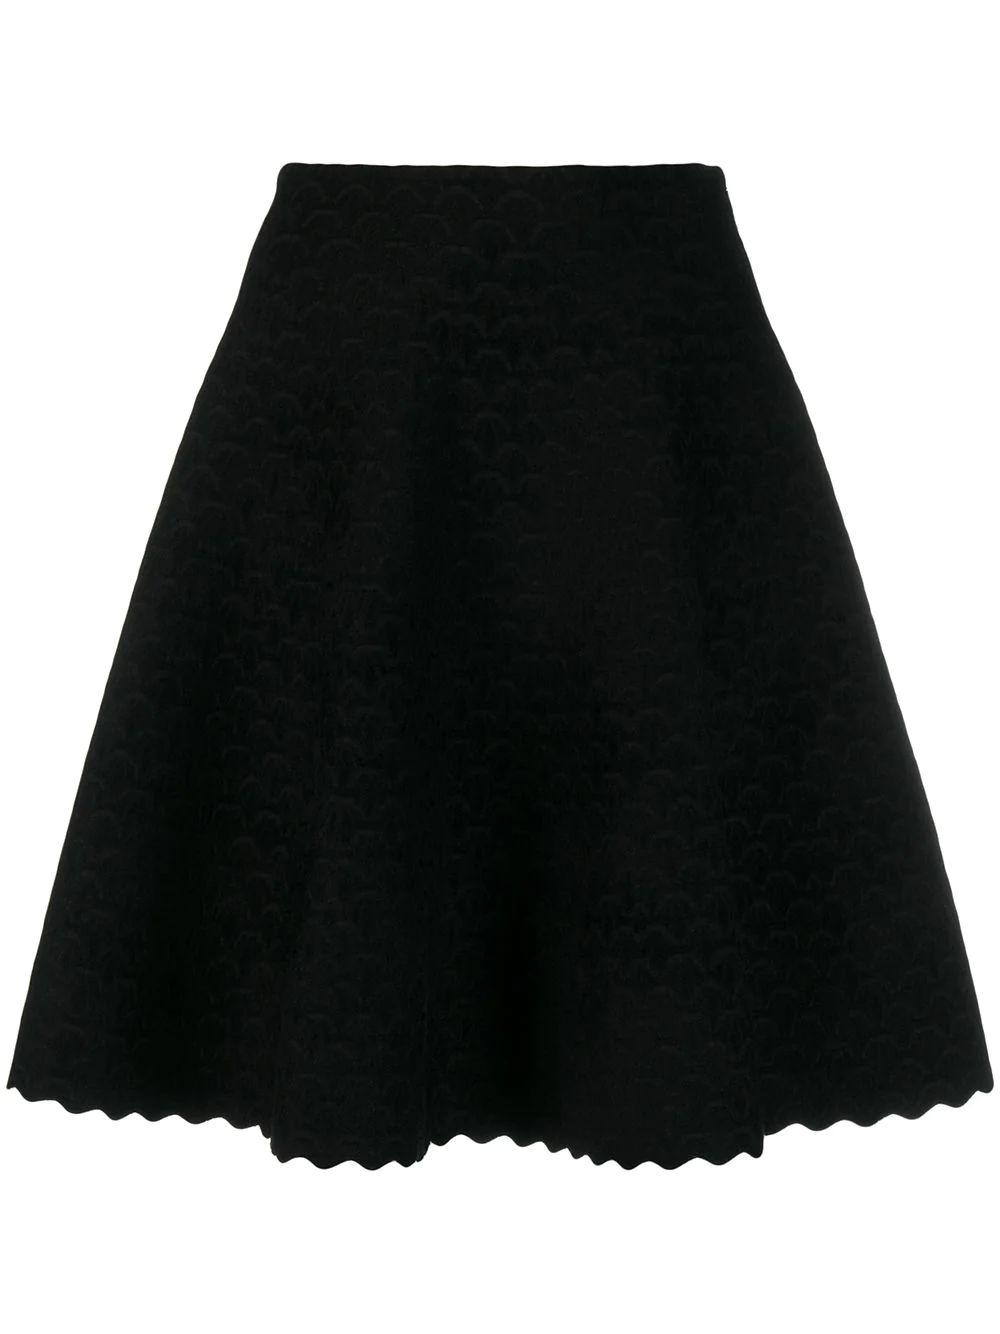 Scalloped Short Length Skirt Item # 9W9JE38CM496